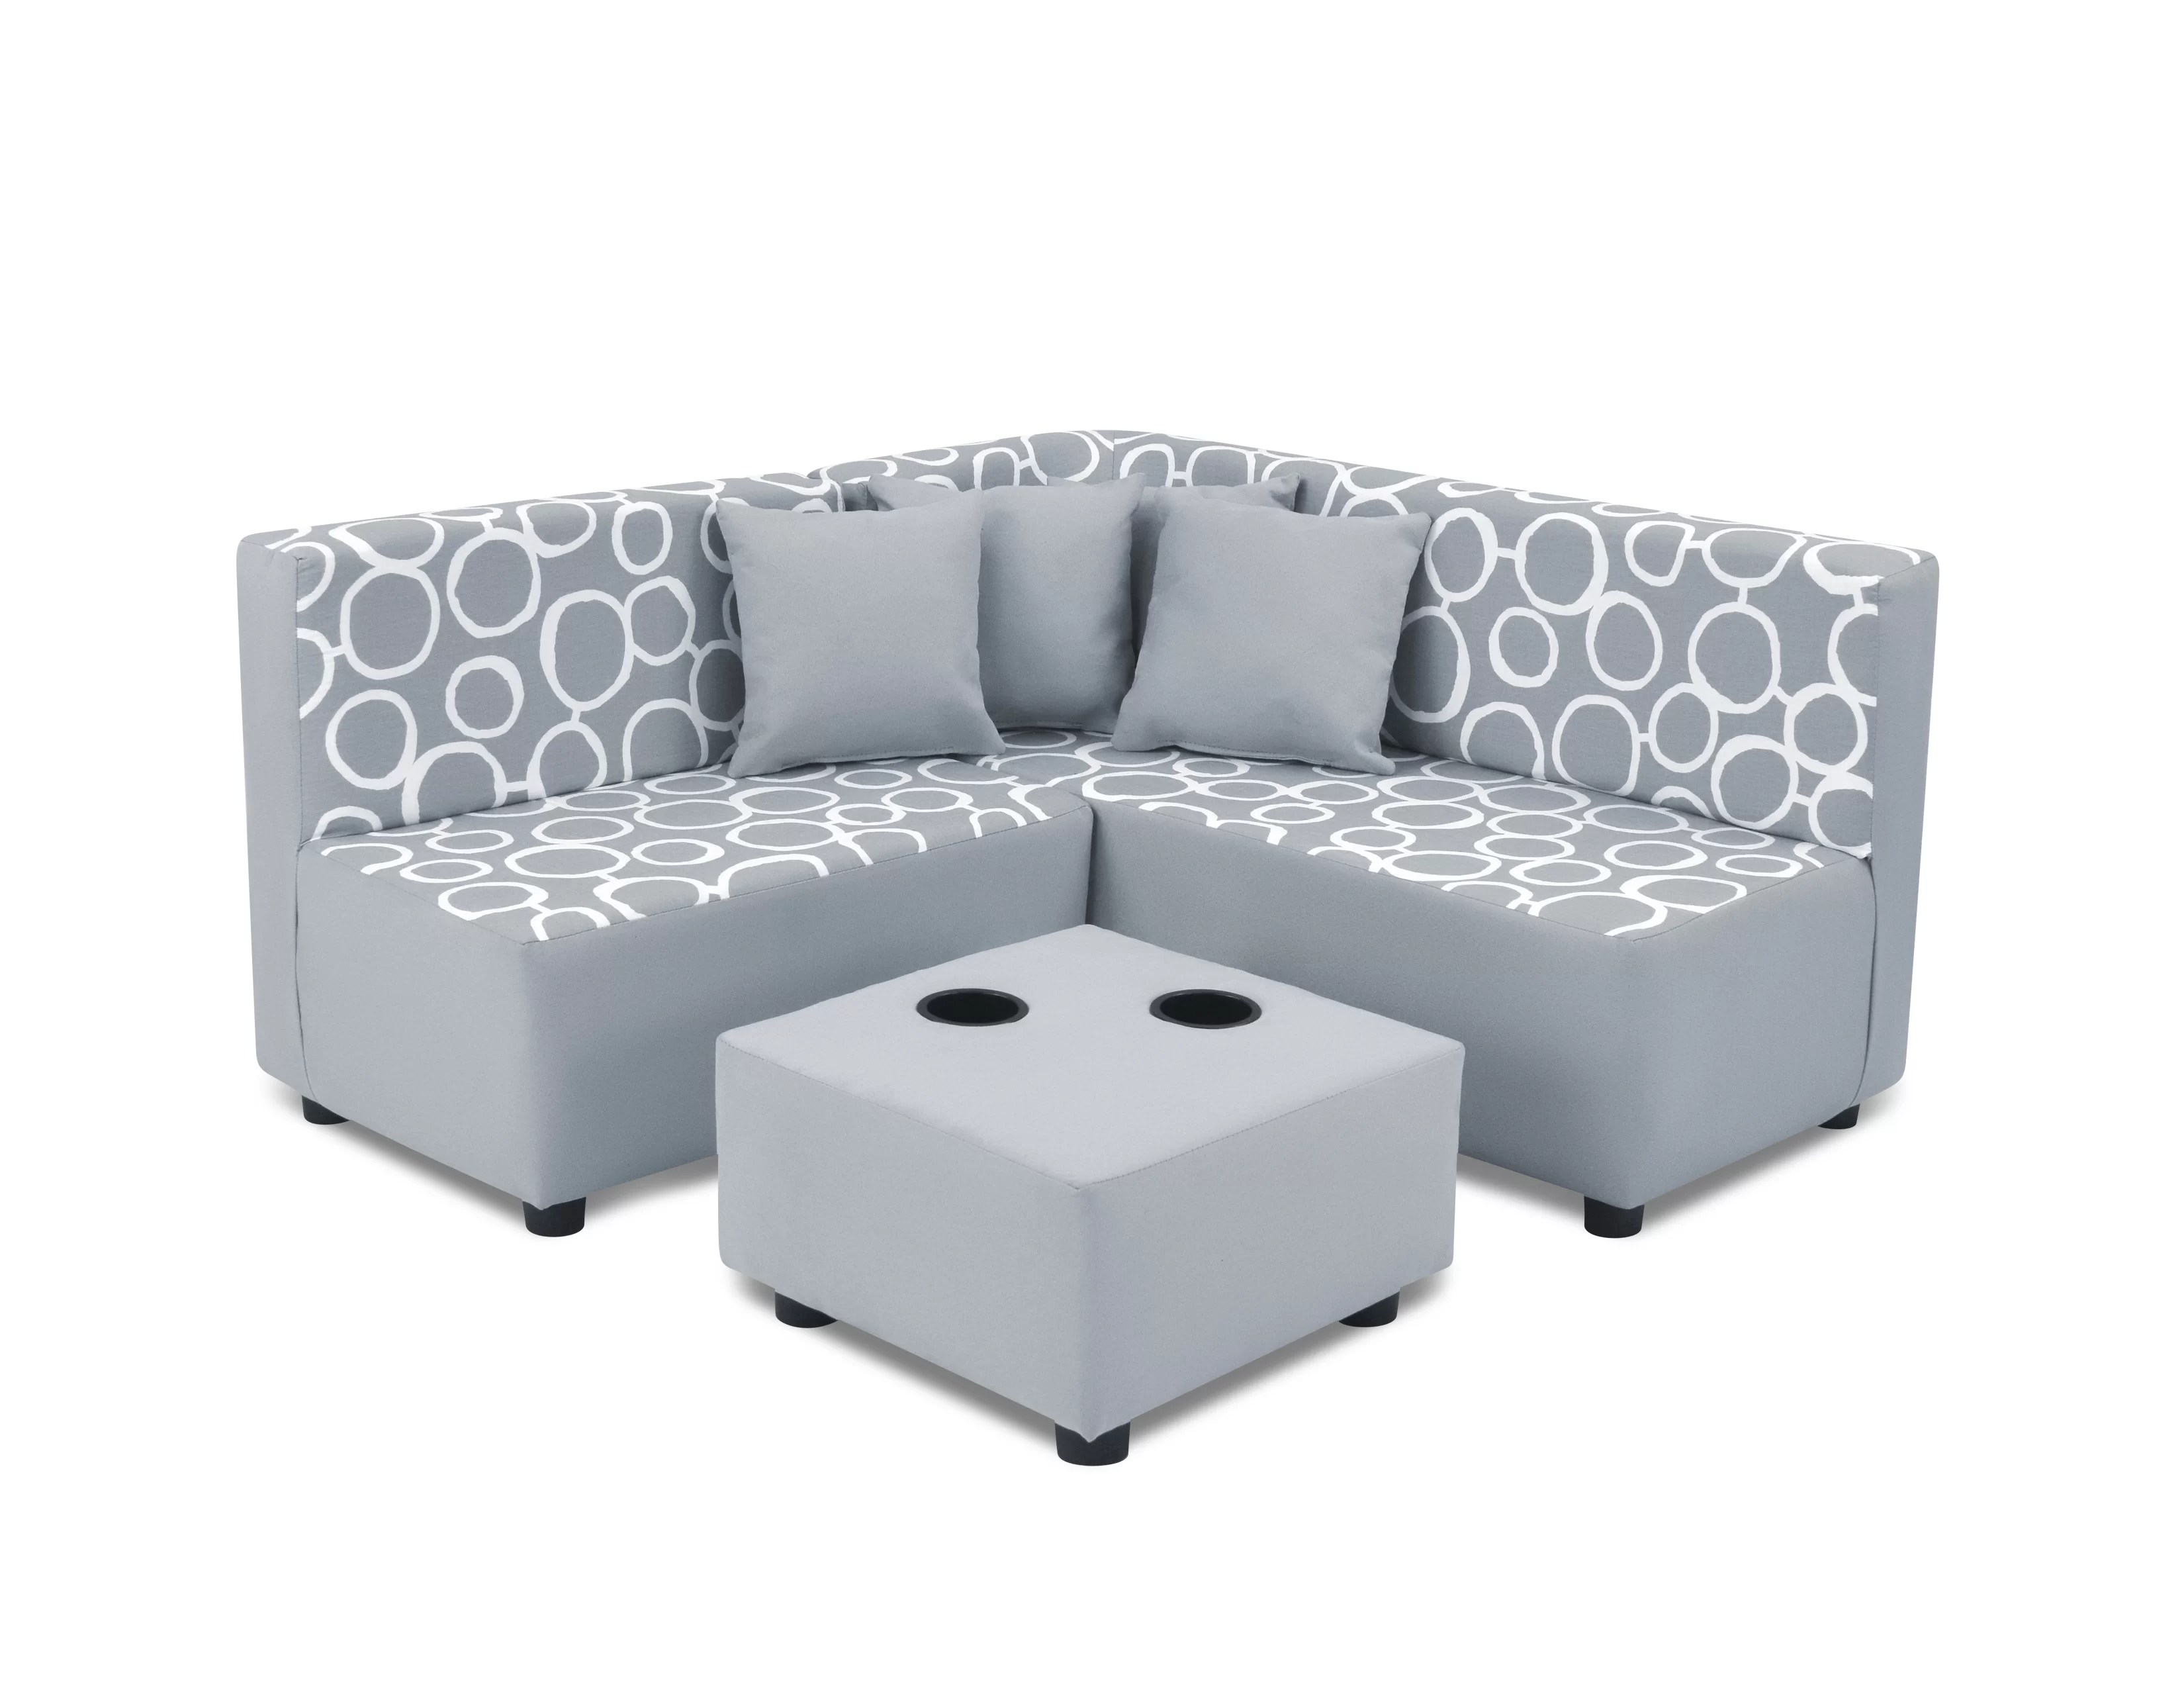 intex ultra lounge chair and ottoman pottery barn kids table chairs wonderful cup holder andjh86 wendycorsistaubcommunity